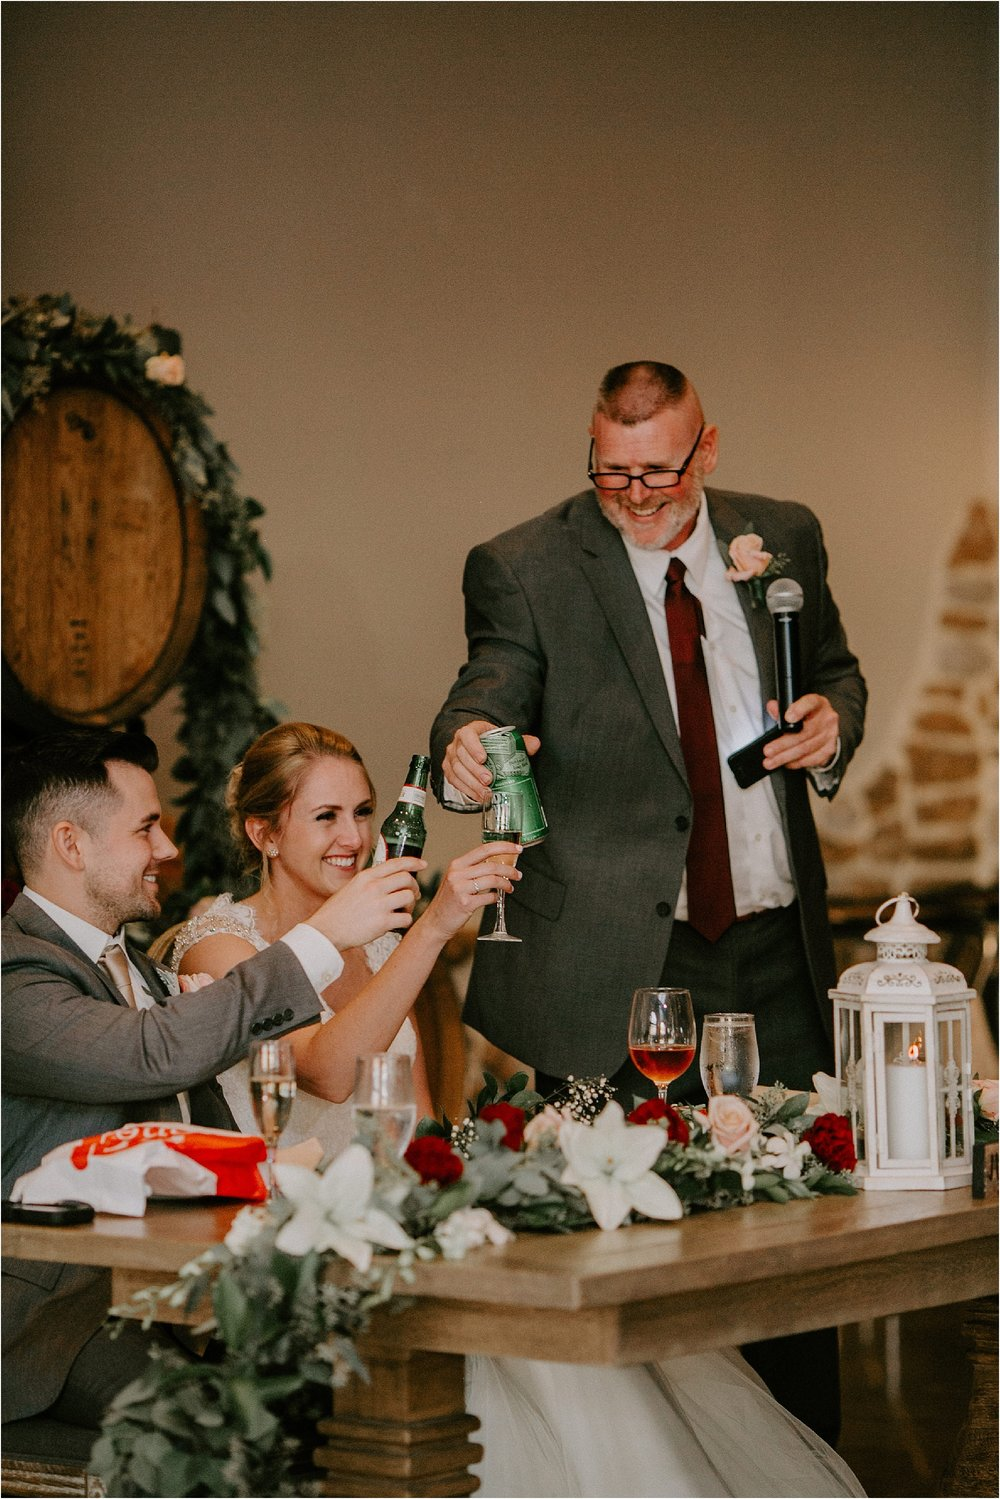 Sarah_Brookhart_Philadelphia_Wedding_Photographer_0057.jpg